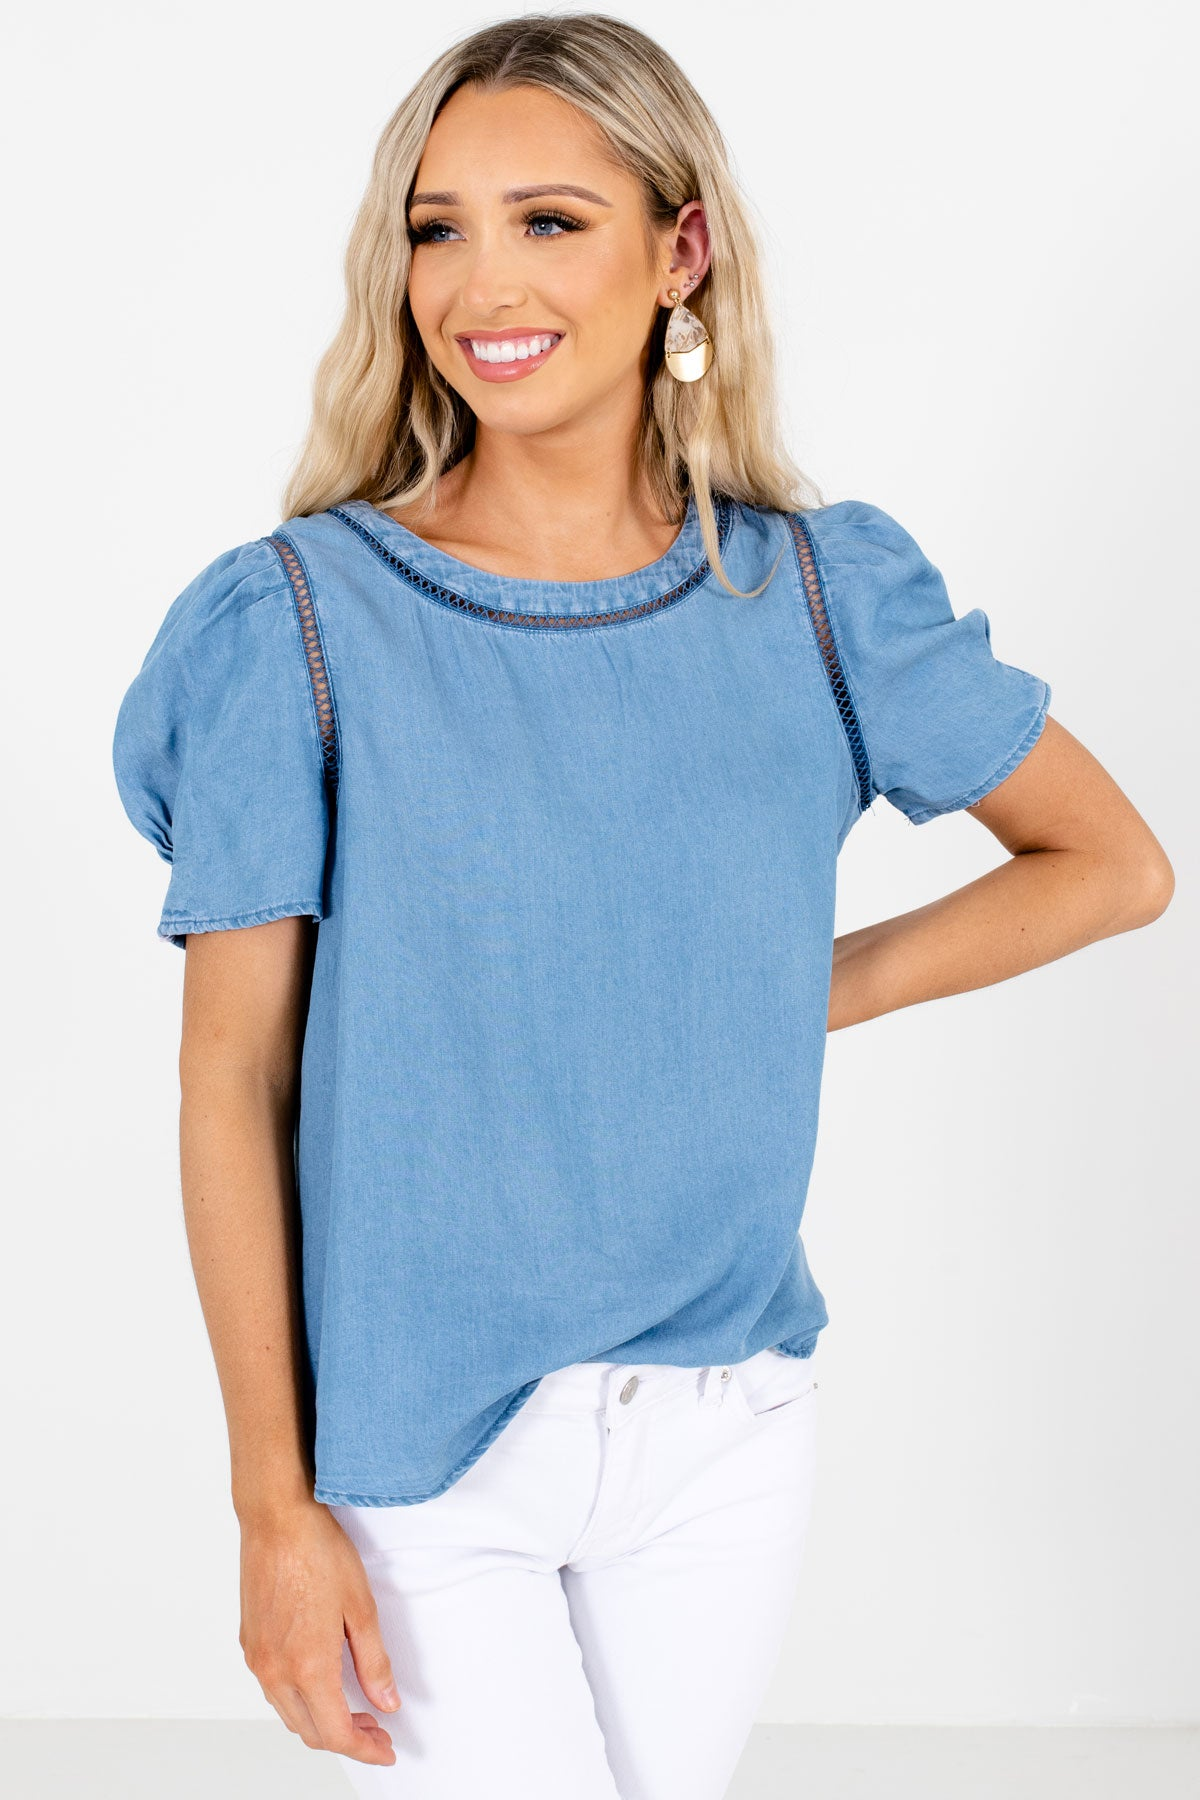 Blue High-Quality Chambray Material Boutique Blouses for Women